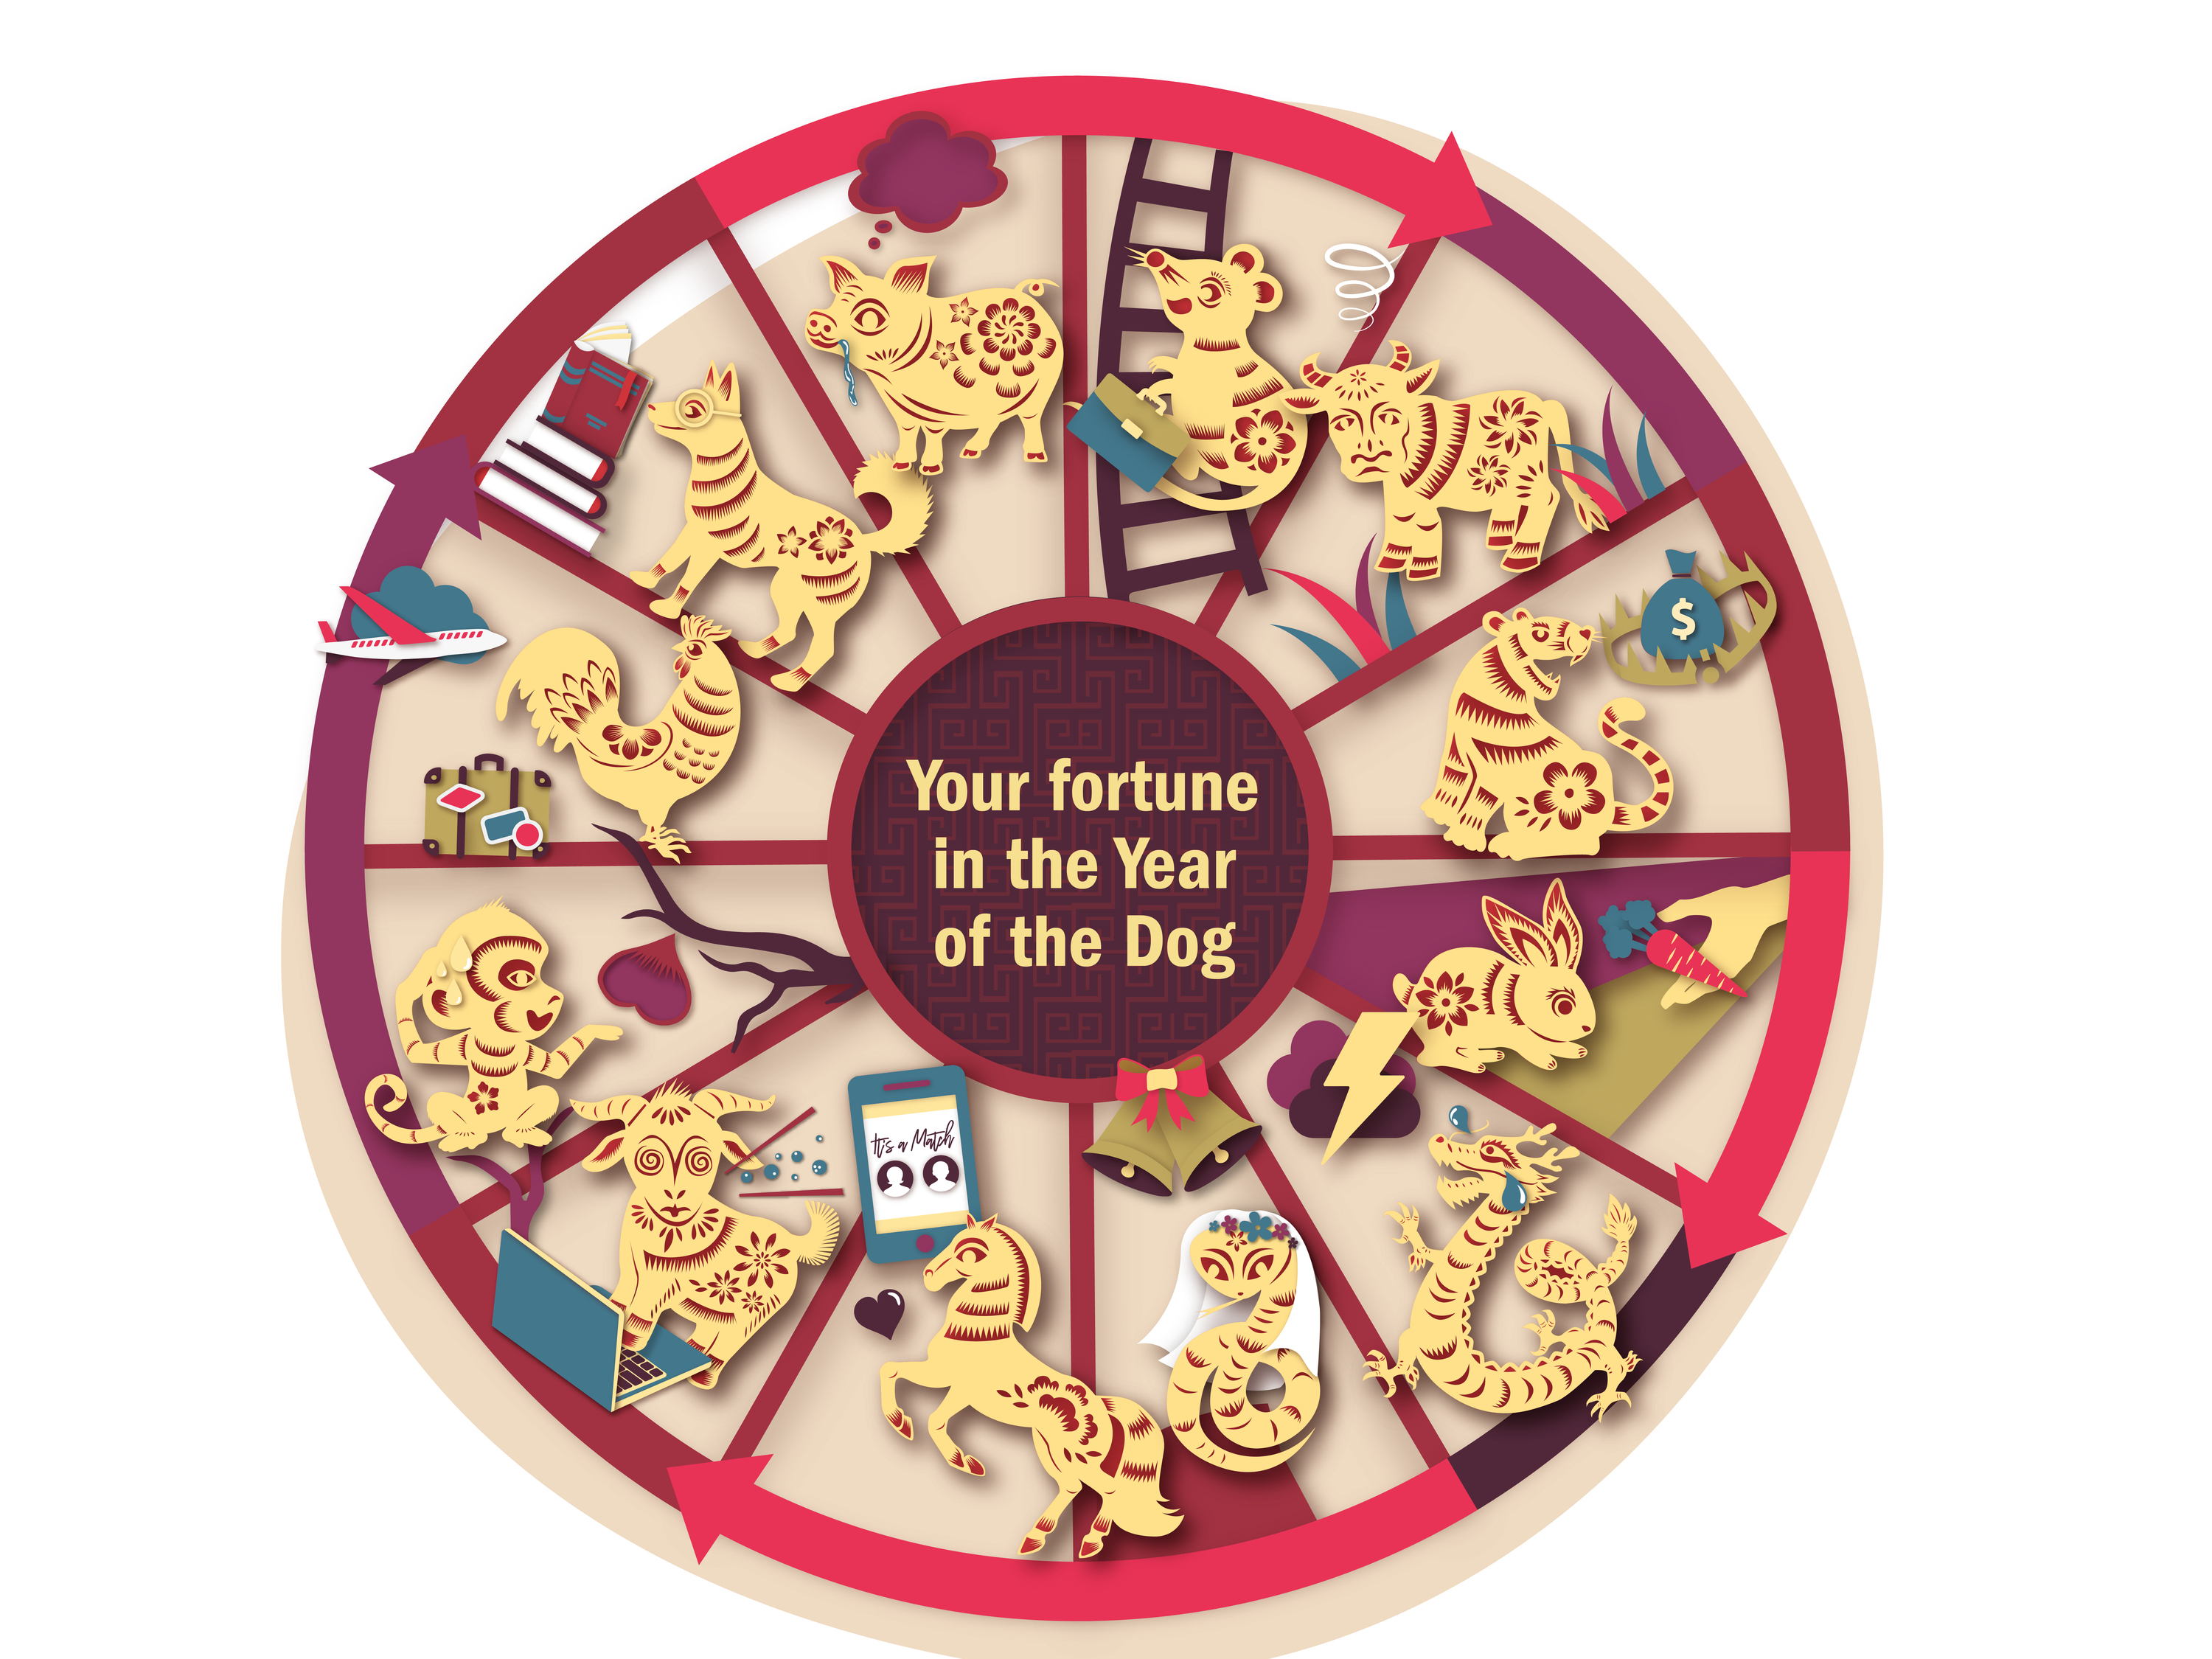 Your fortune in the Year of the Dog